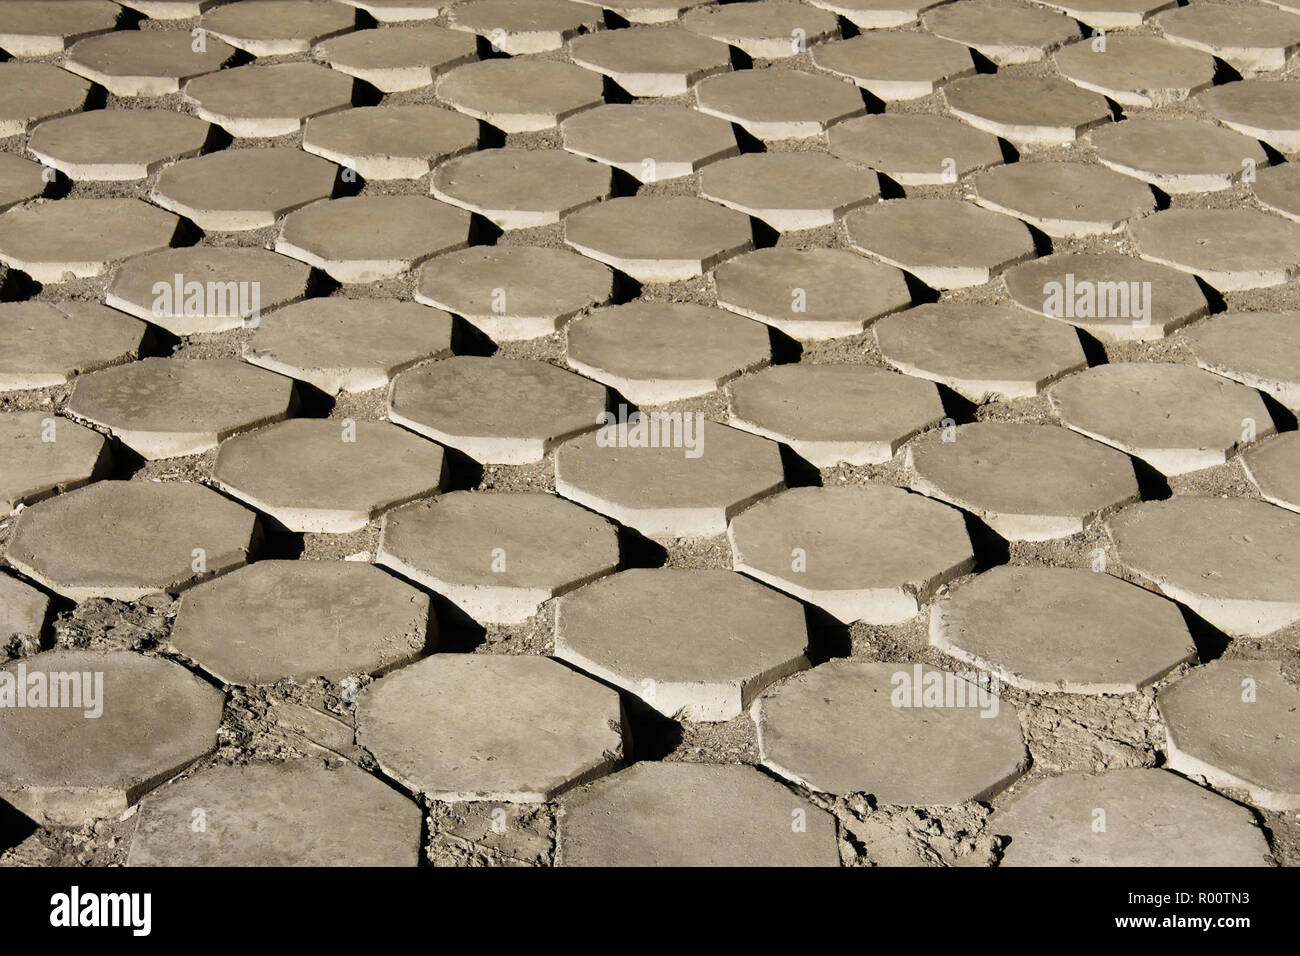 Consolidated skeleton with large octagonal concrete plates fastened together by concrete - Stock Image